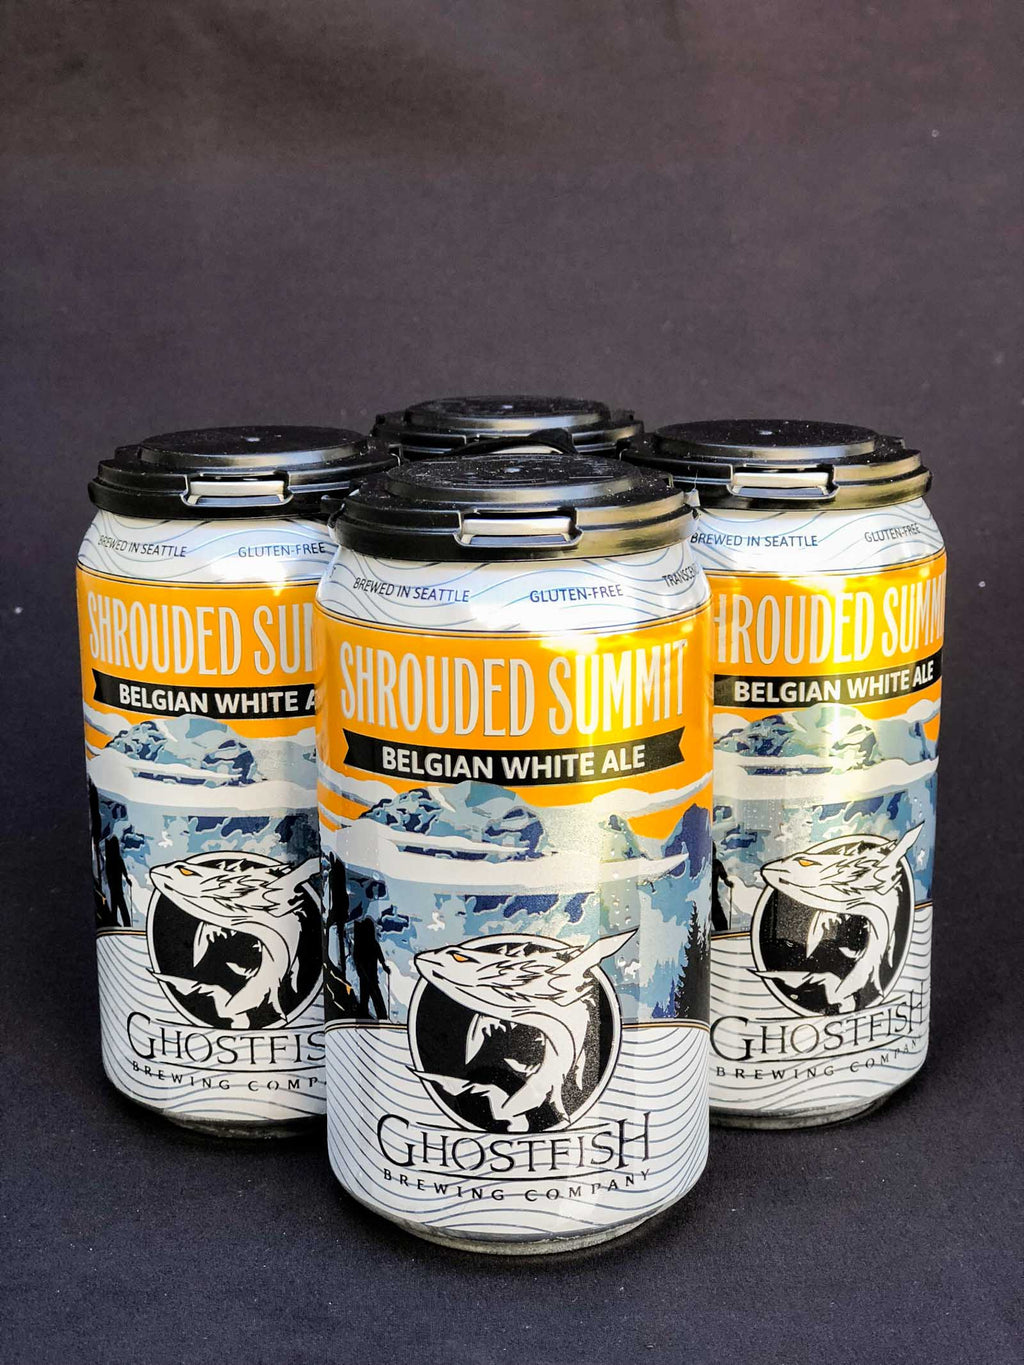 Buy Ghostfish Shrouded Summit Belgian White Ale Online